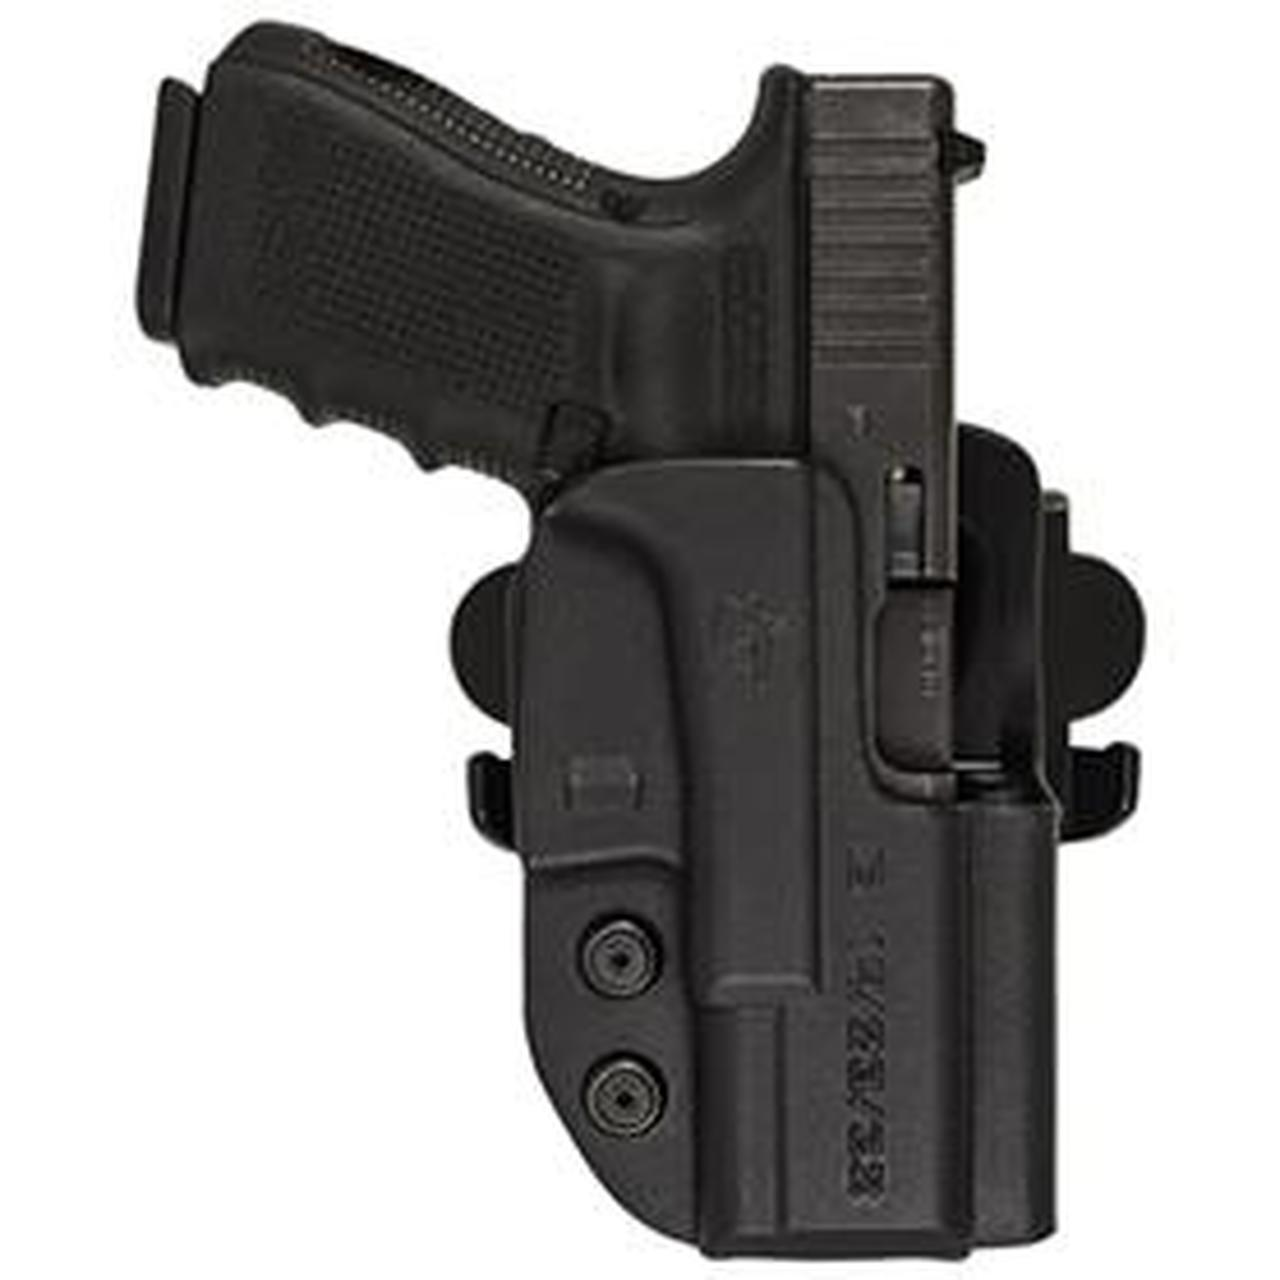 BEST VP9 IWB HOLSTER OF 2020